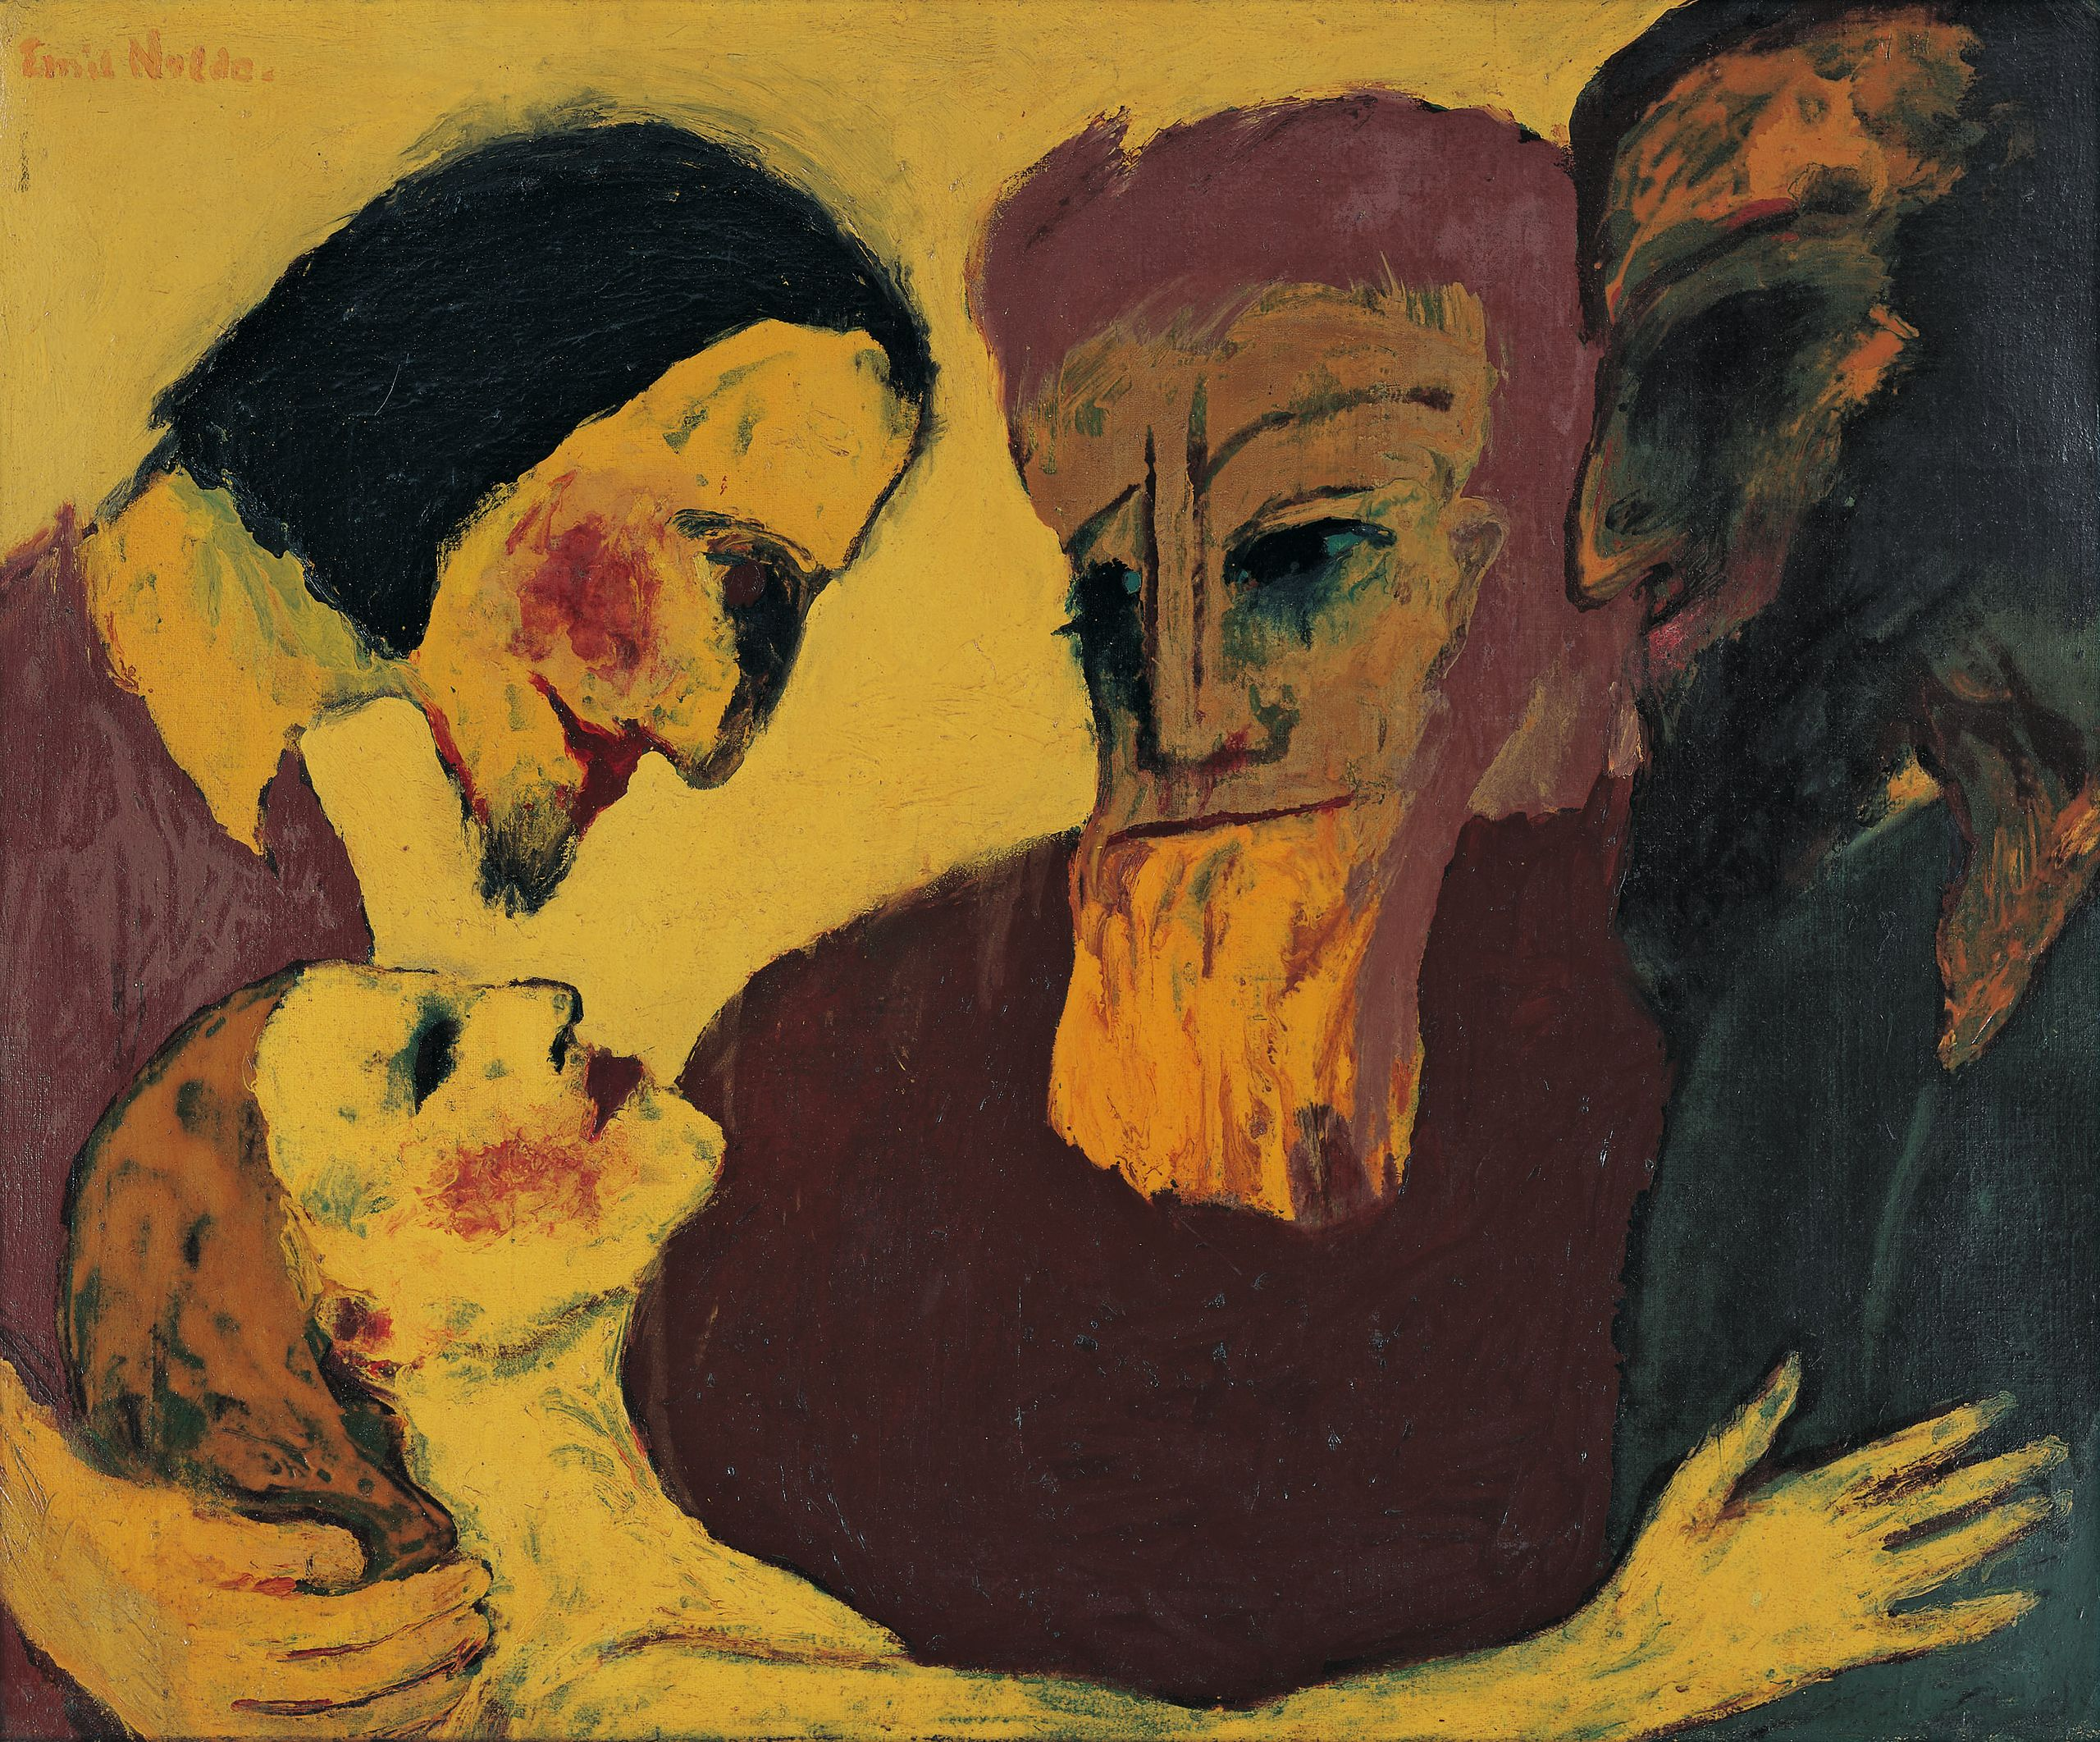 Emil Nolde The Artist During the Third Reich